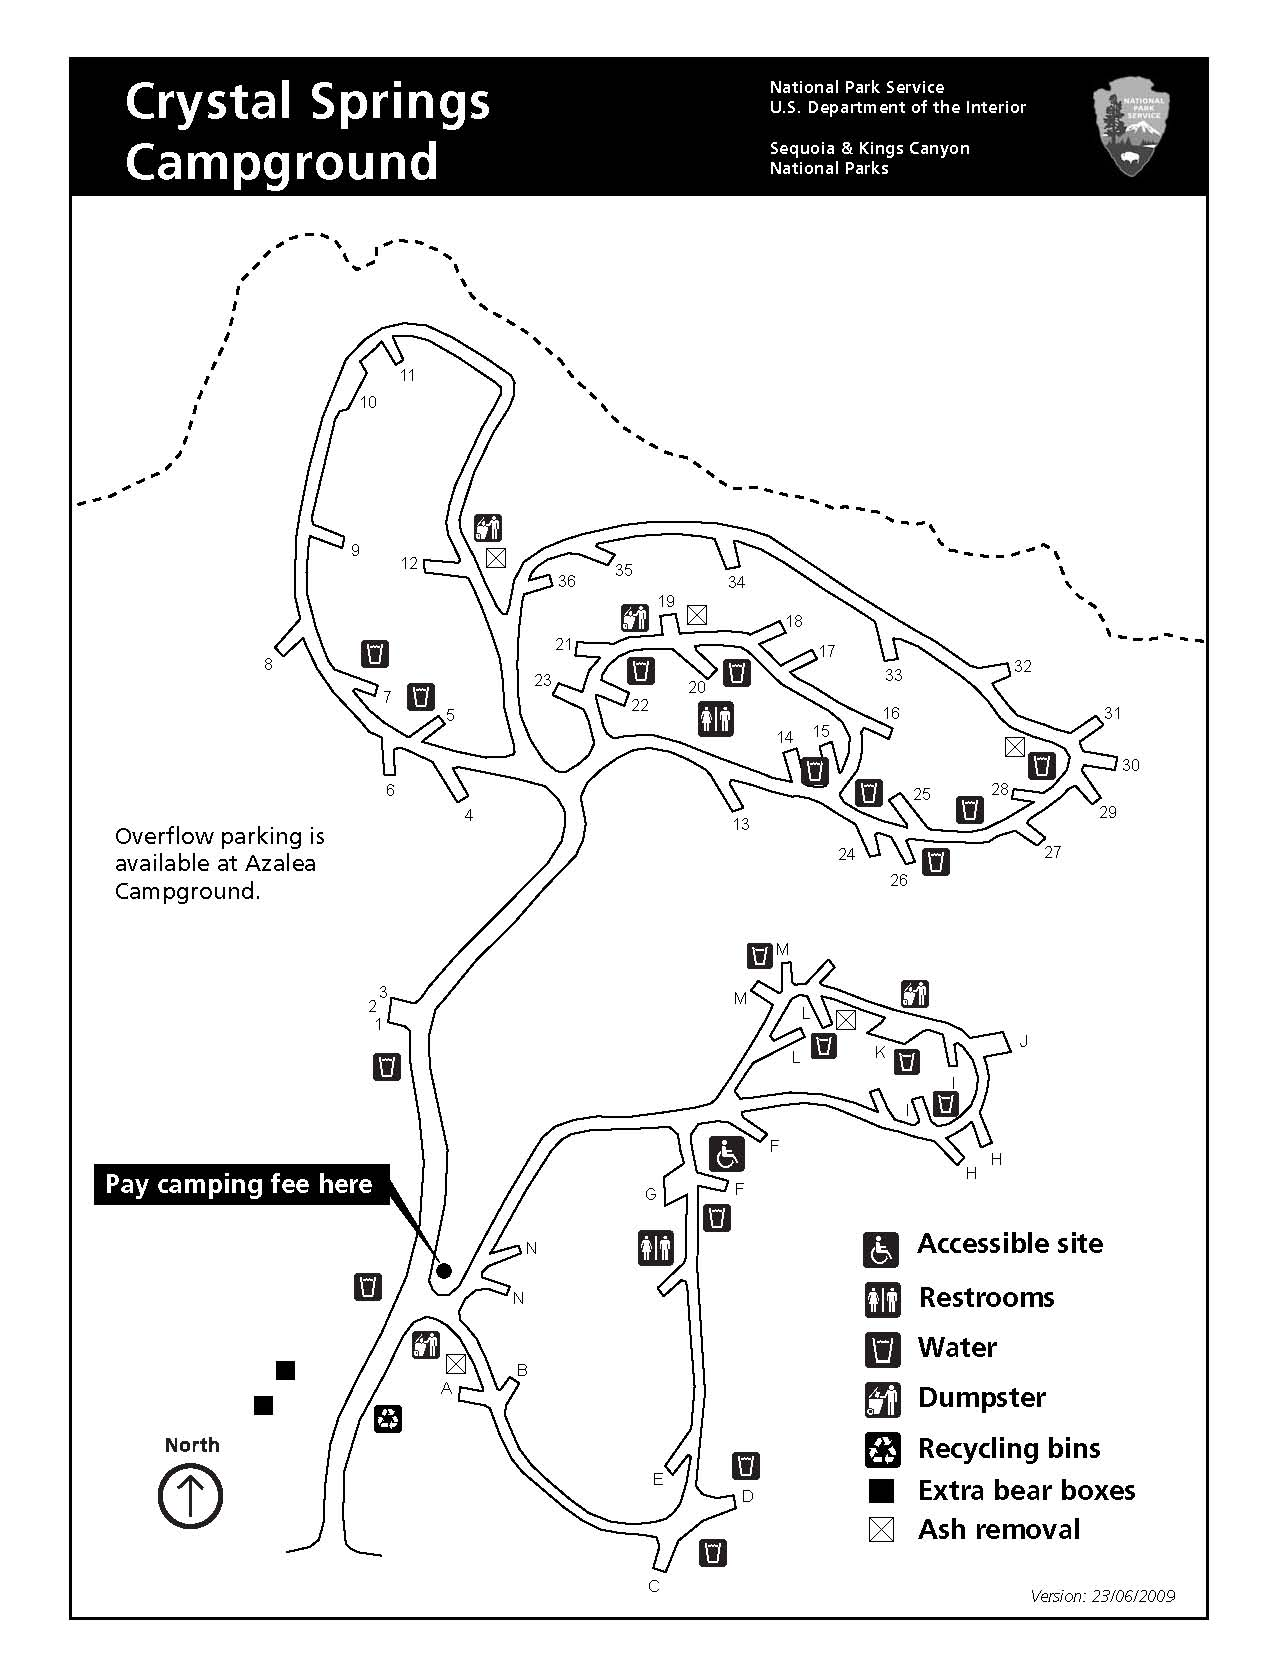 Crystal Springs Campground map, Kings Canyon National Park.